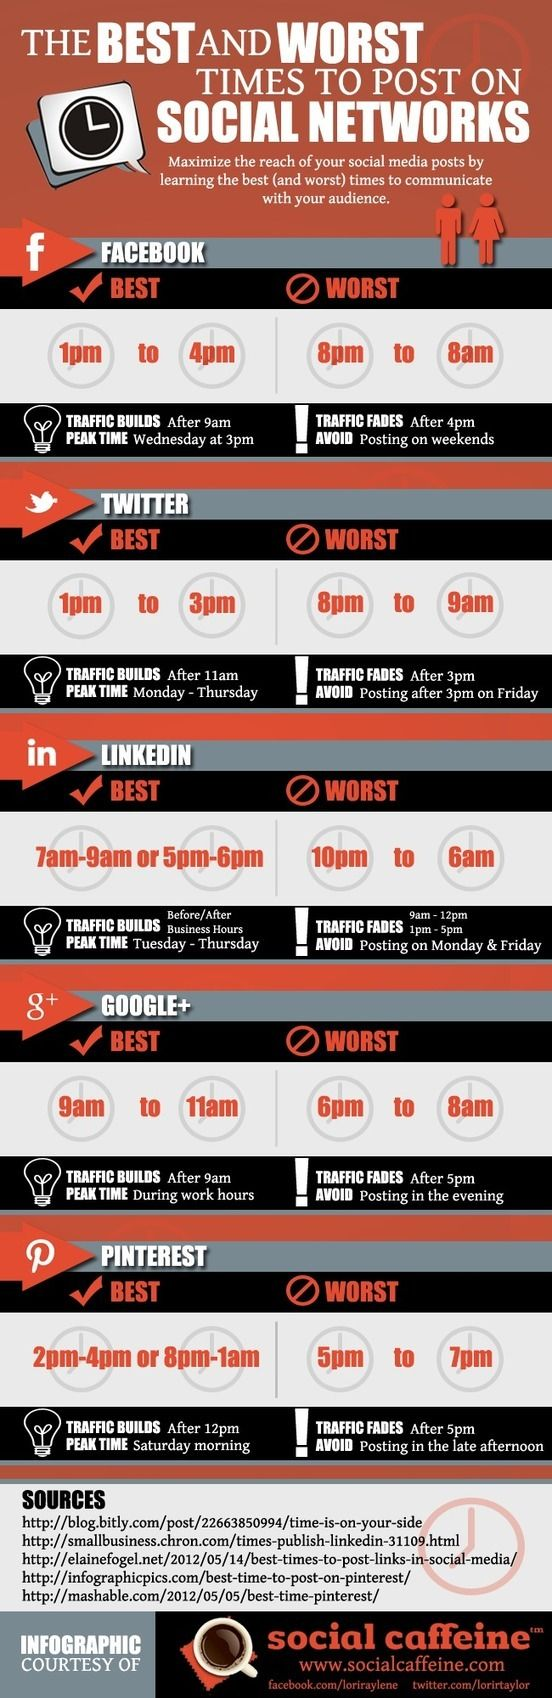 The Best and Worst Times to Post on Social Networks. Interesting!